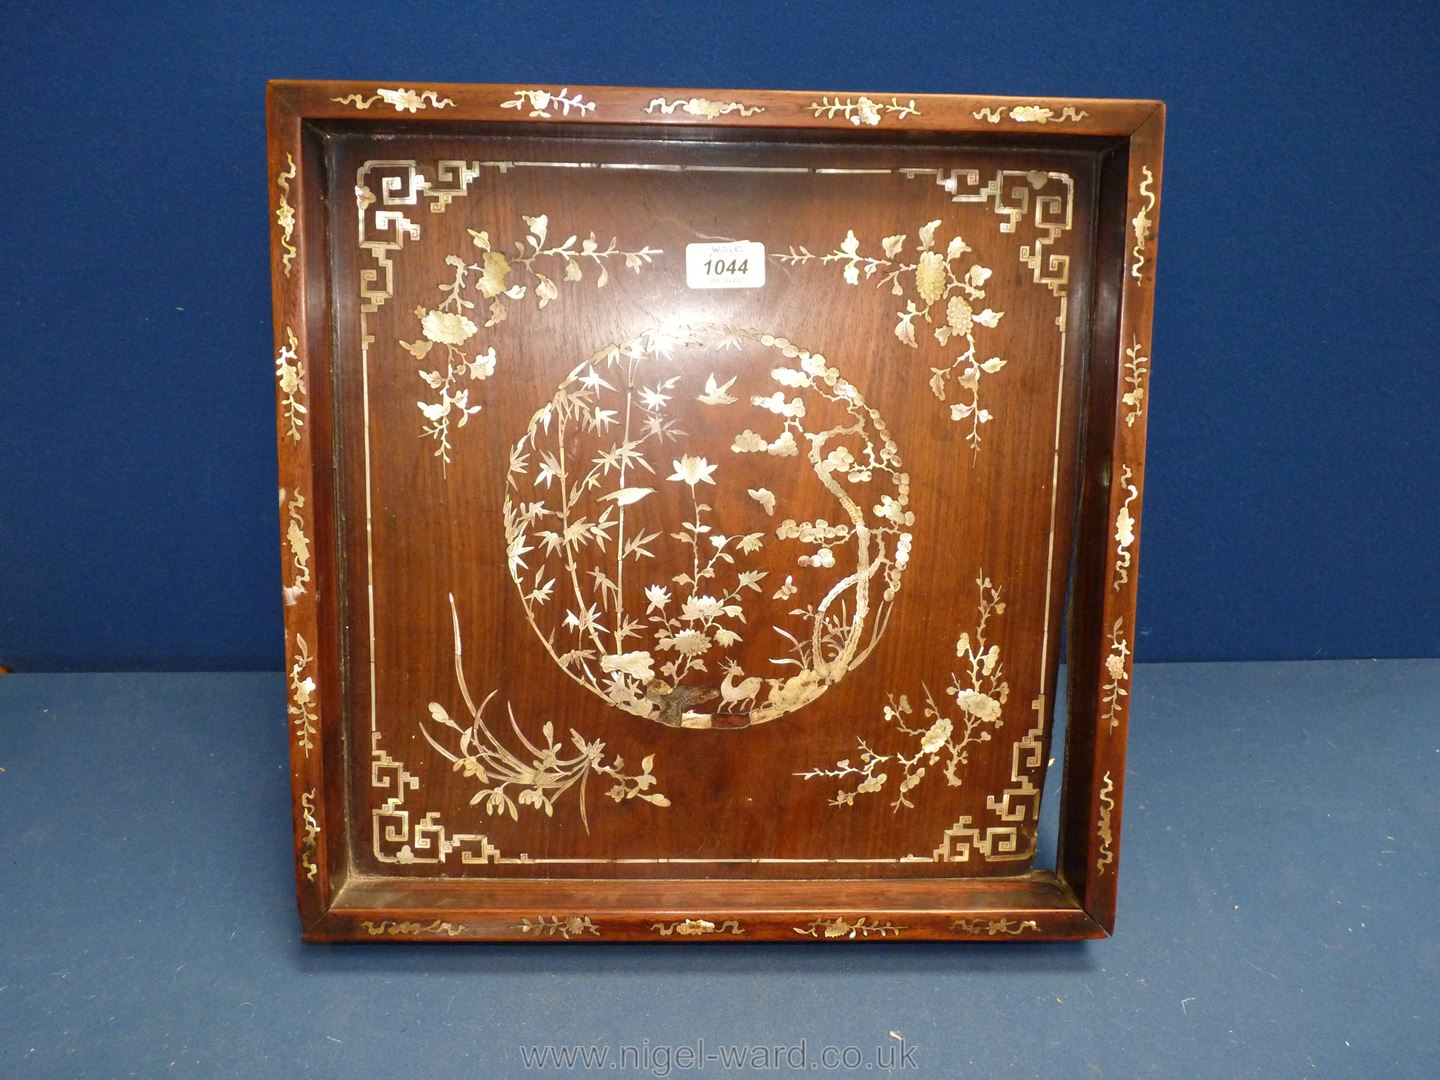 A Chinese wooden Tray profusely decorated with Mother of Pearl inlay depicting flowers, etc.